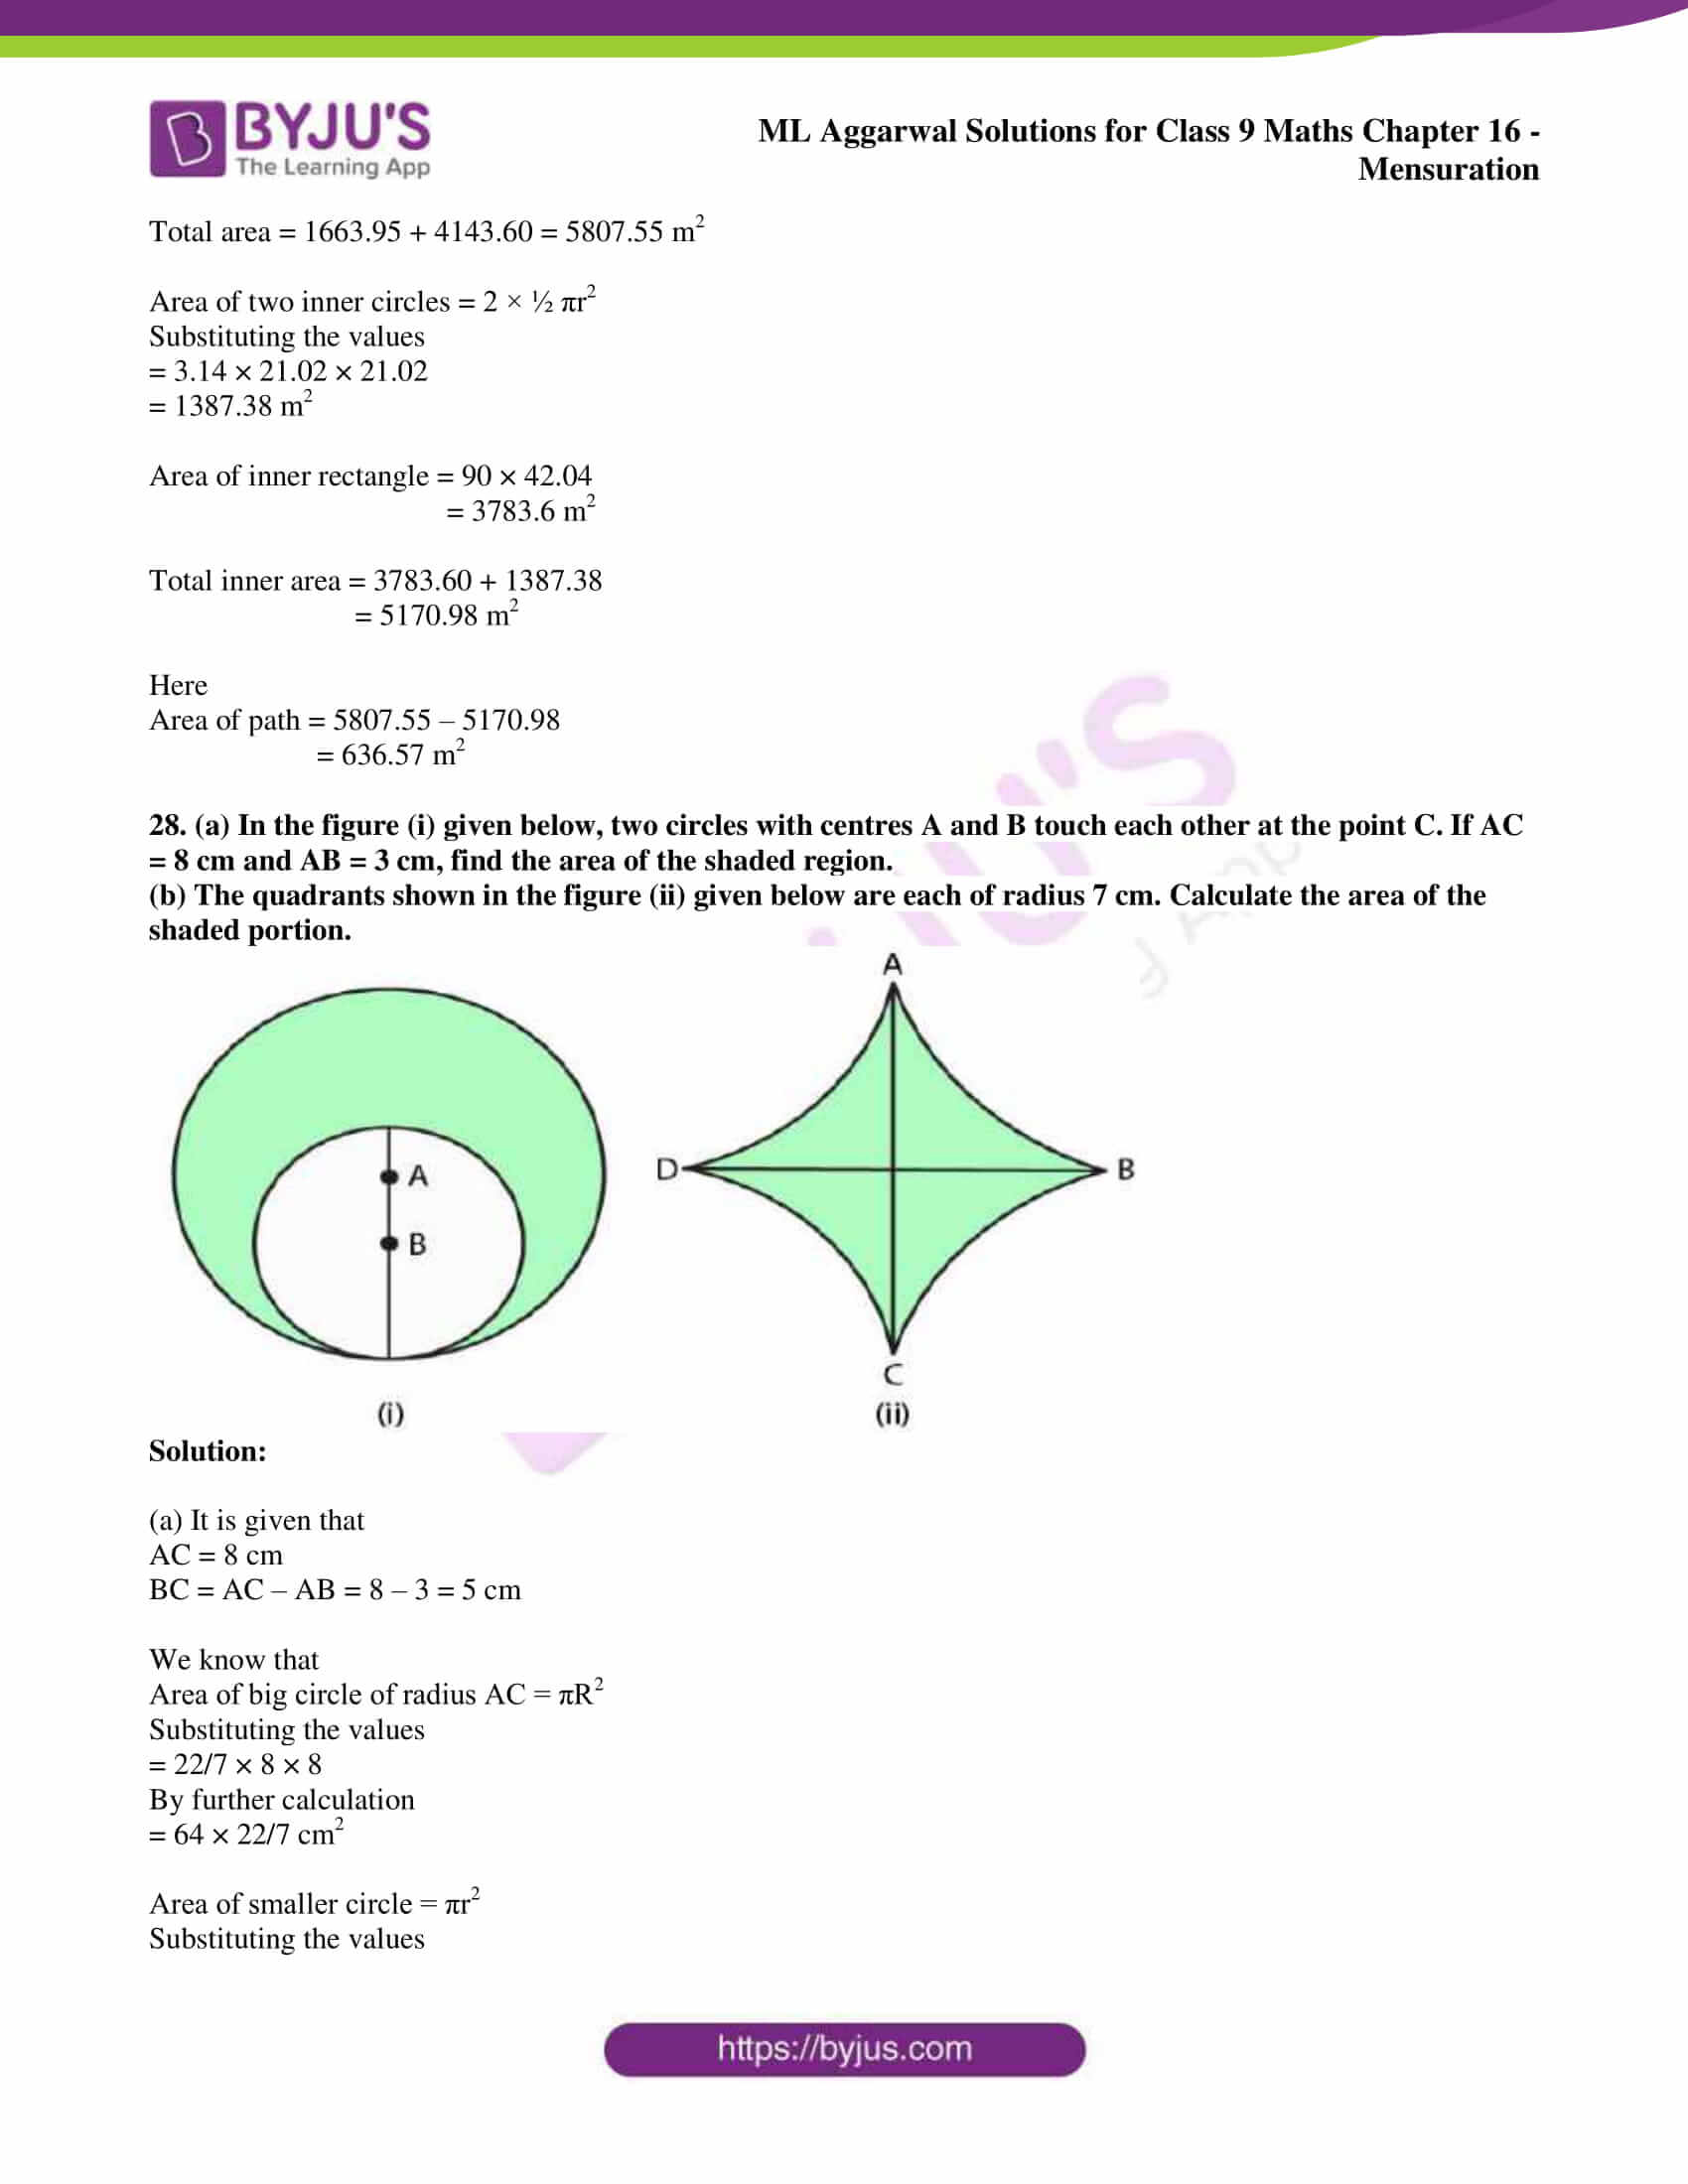 ml aggarwal solutions for class 9 maths chapter 16 097